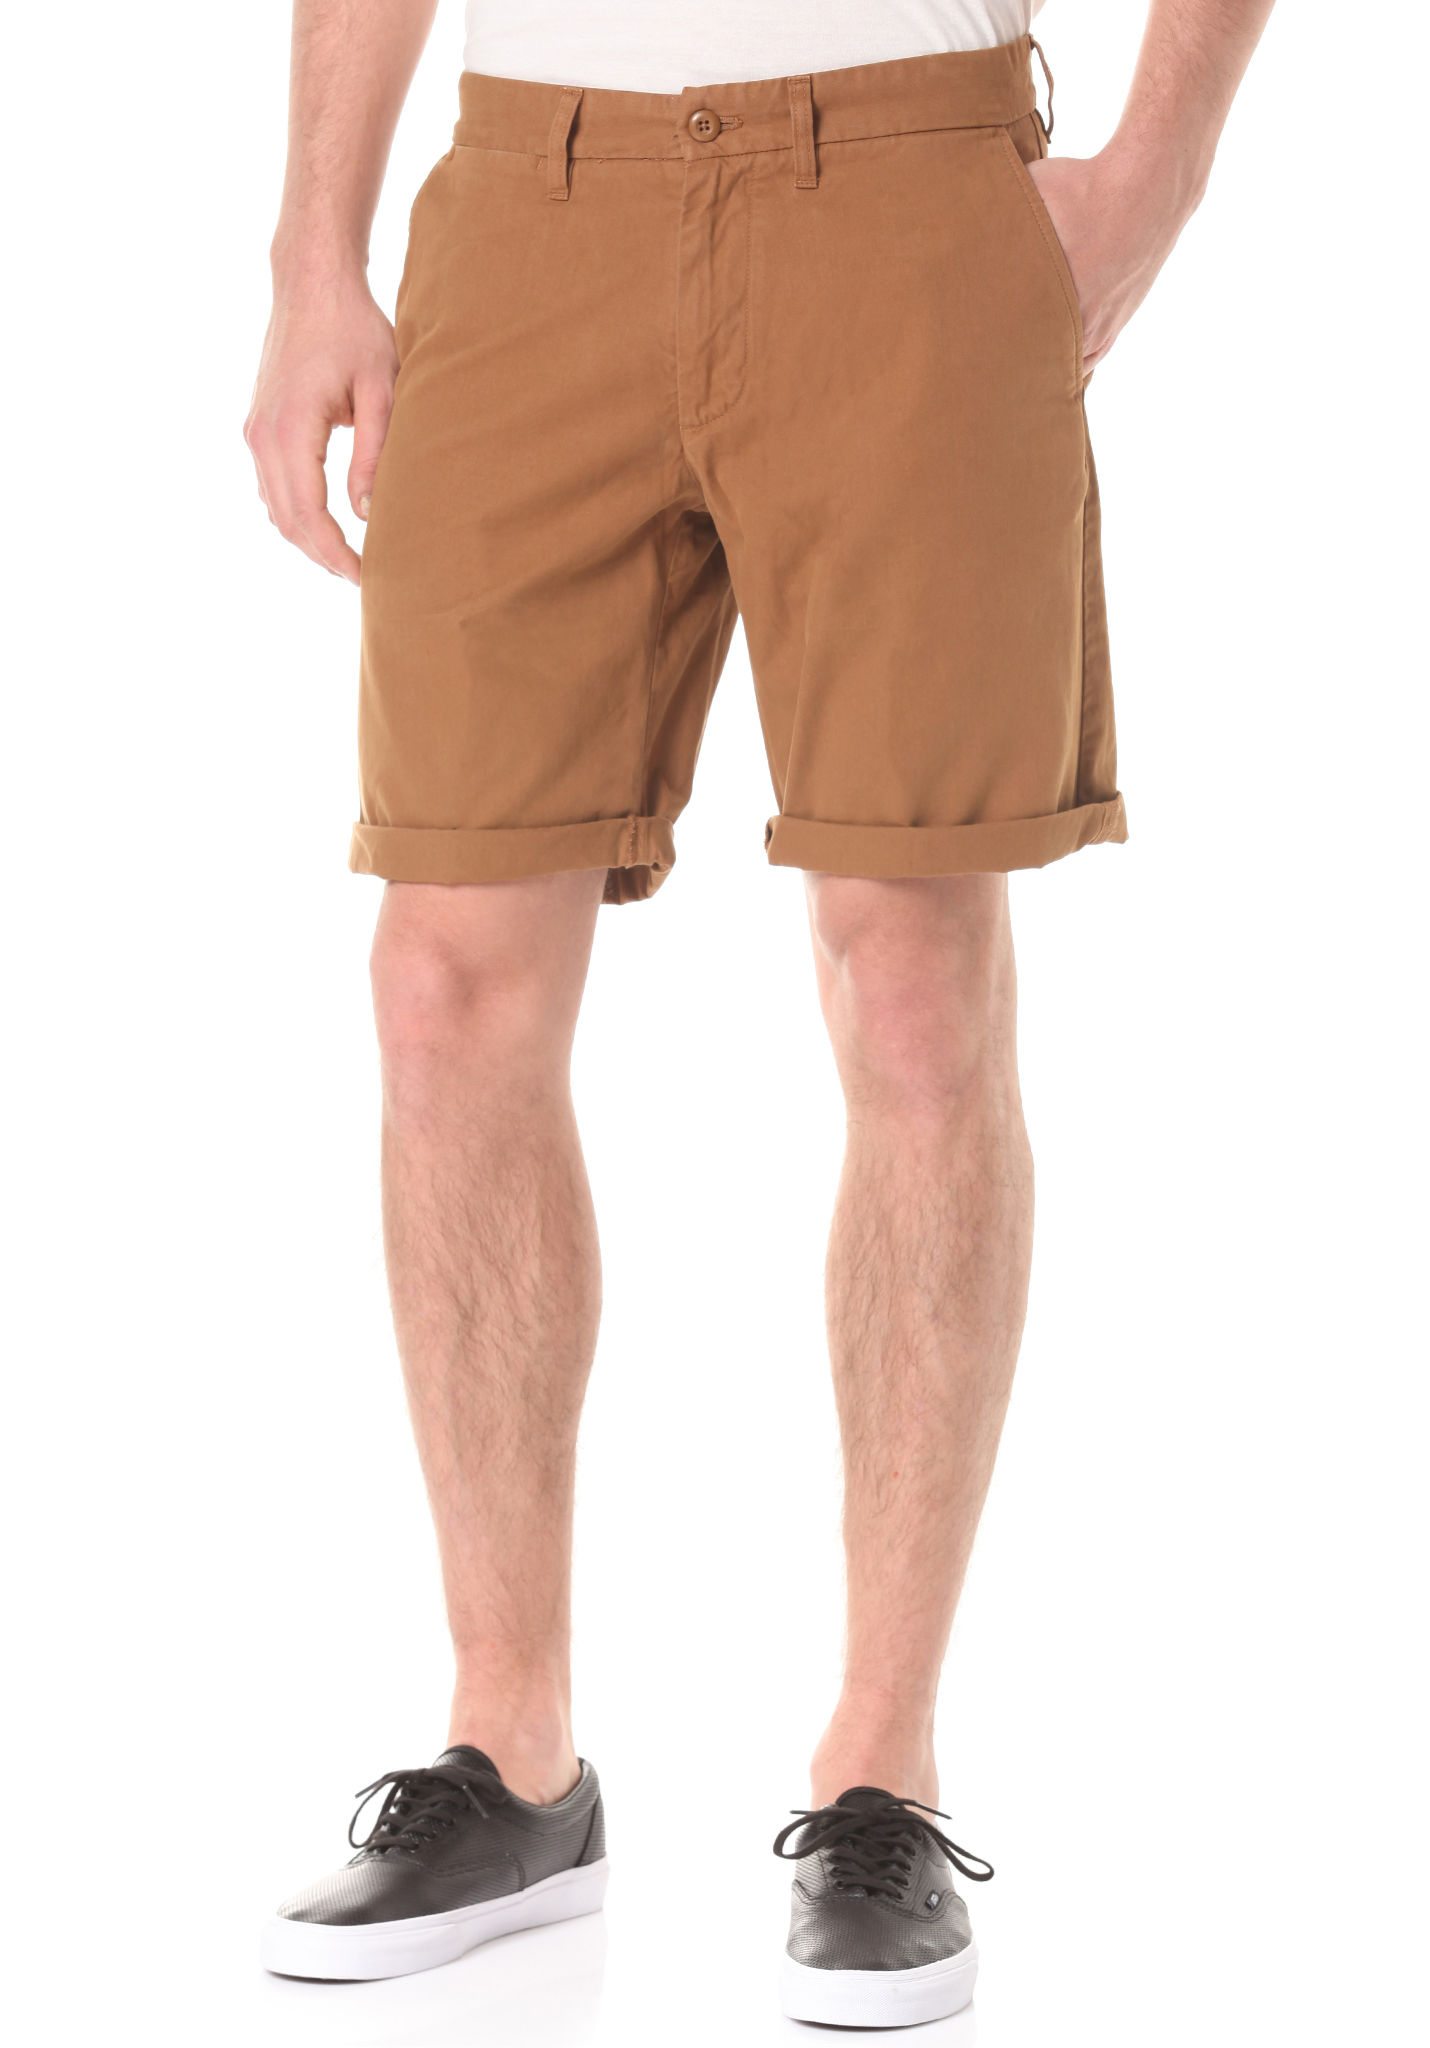 7618765e458c98 Carhartt Sports Pour Homme Wip Marron Planet Chino Johnson Short f8rqf